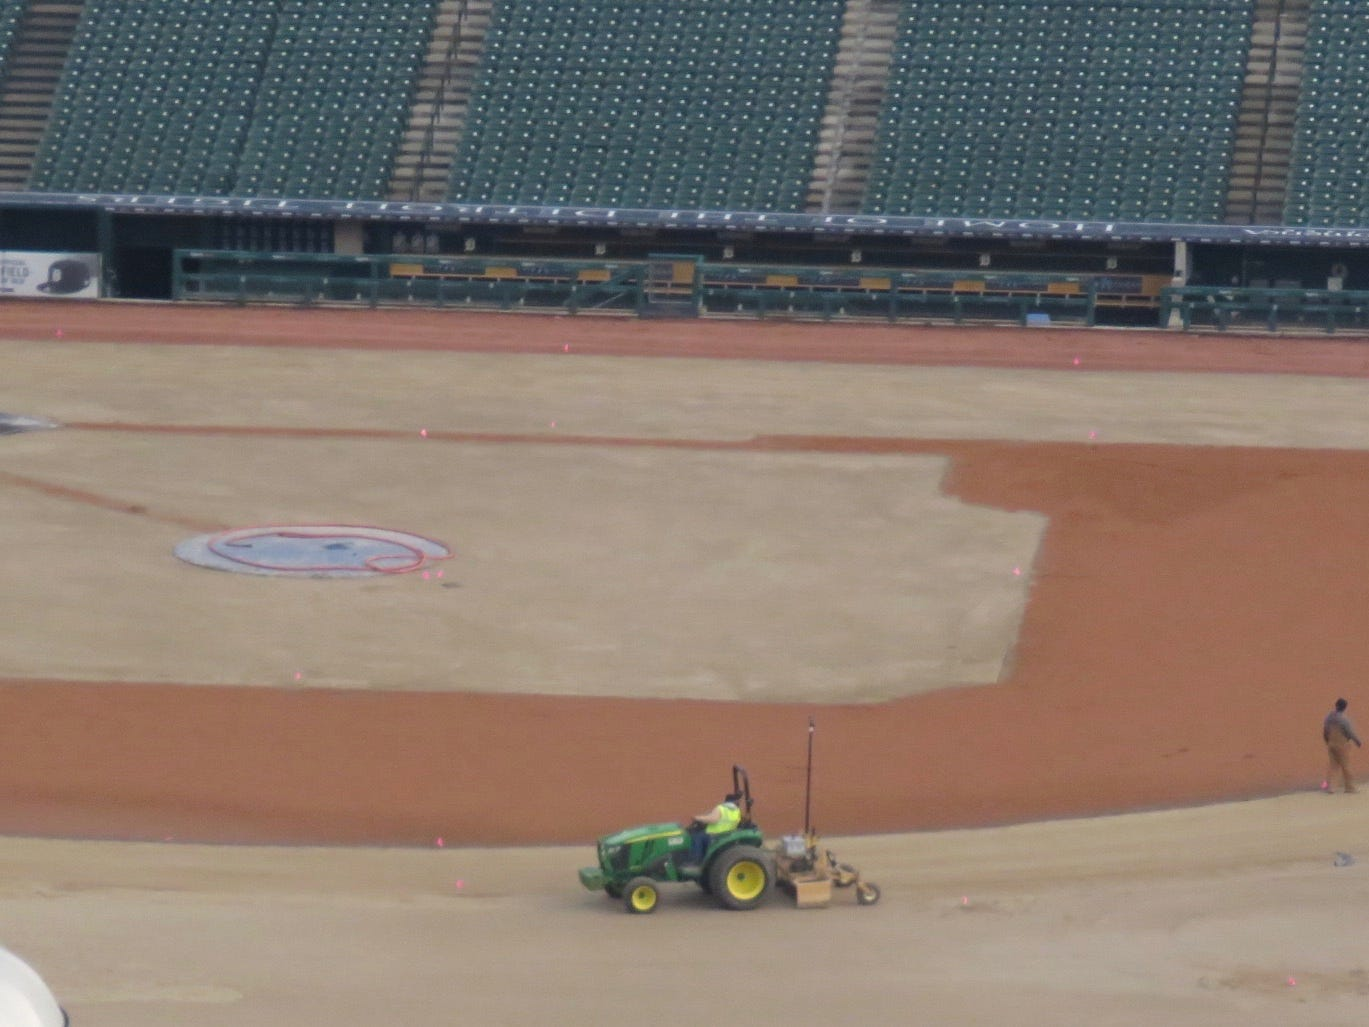 A look at Comerica Park as crews work to replace the grass in late October, 2018.